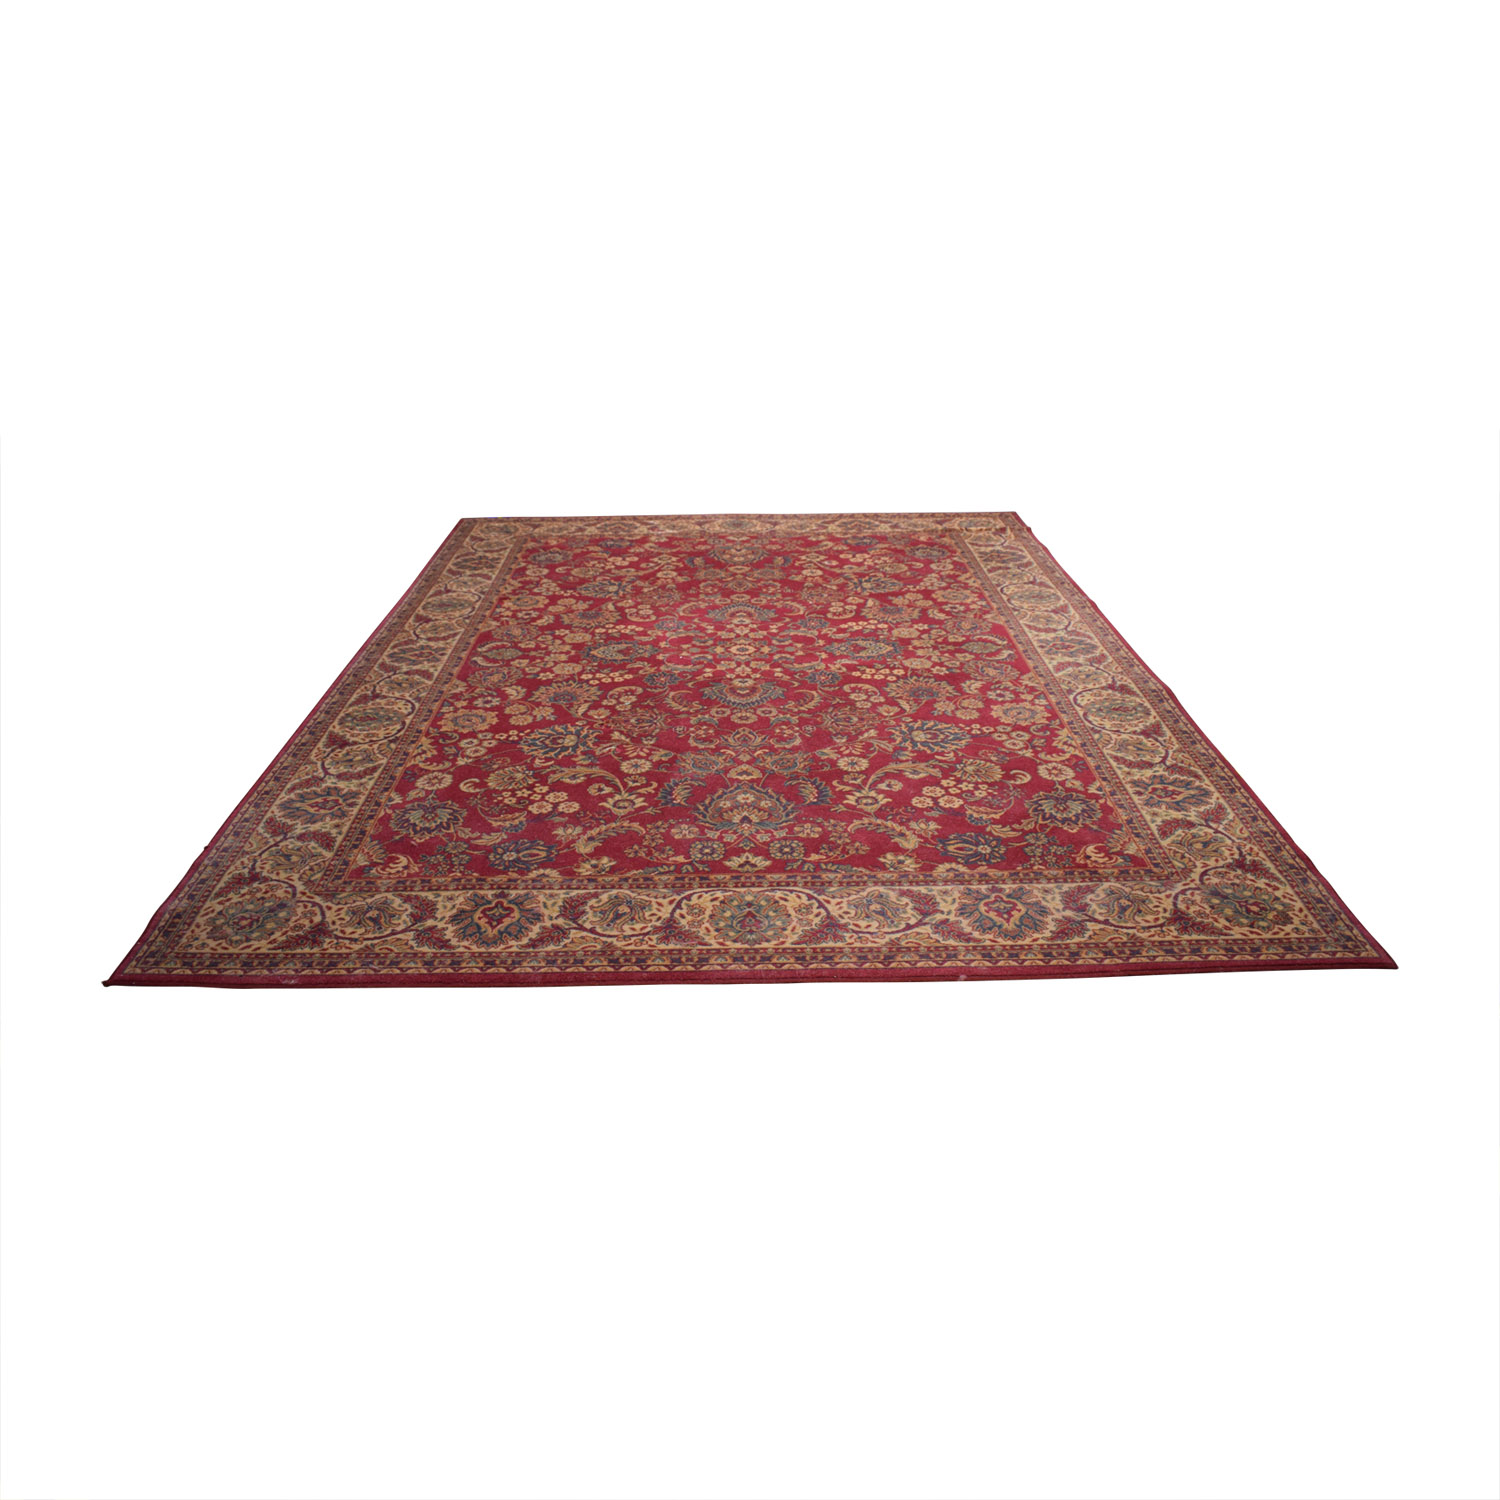 shop Belgium Masters Red Persian Rug Belgium Masters Decor